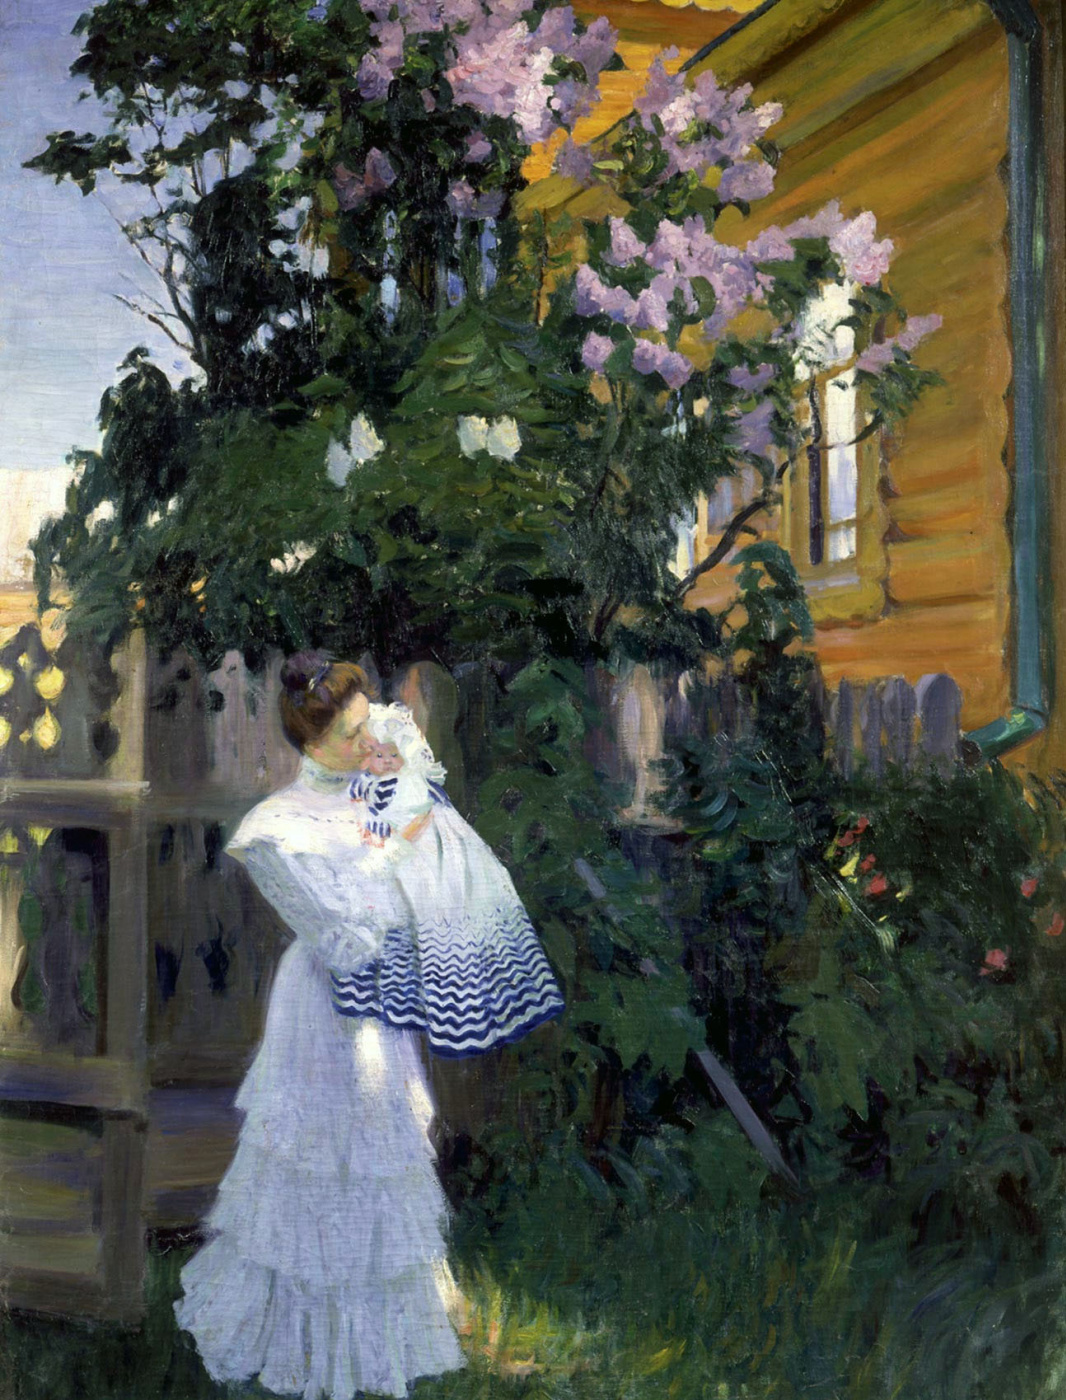 Boris Kustodiev. Lilac. Depicted Evstafevna Yulia Kustodieva, the artist's wife, with her daughter Irina